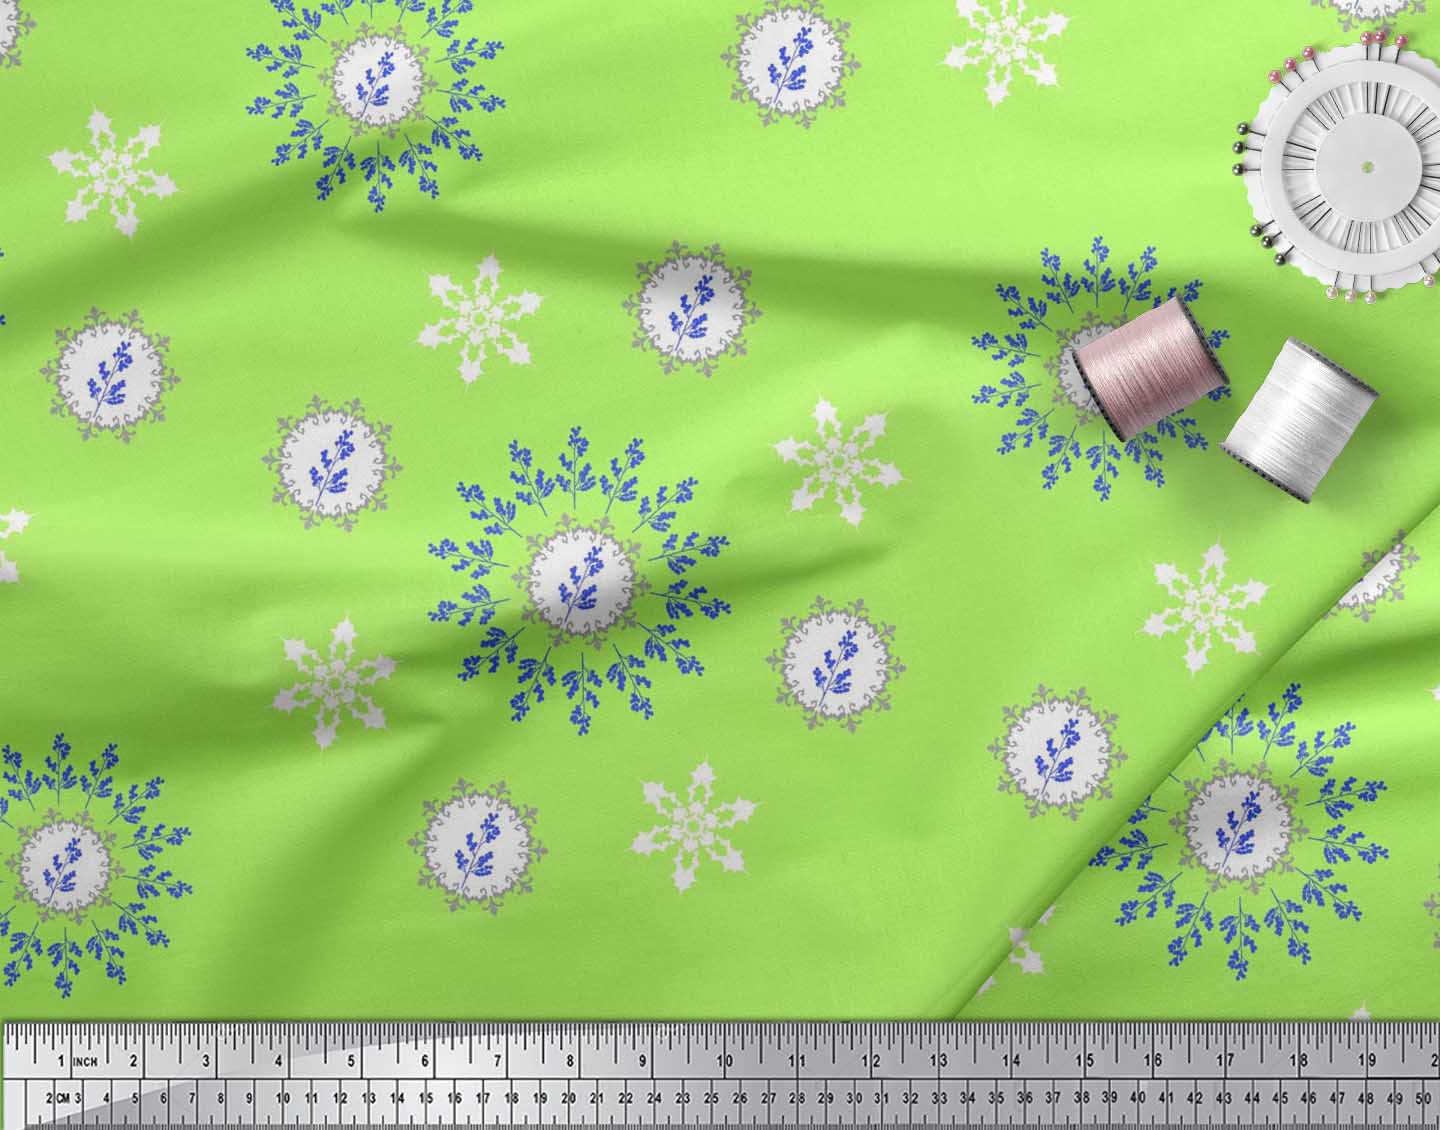 Soimoi-Fabric-Berries-amp-Damask-Decorative-Printed-Craft-Fabric-bty-DC-513A thumbnail 21